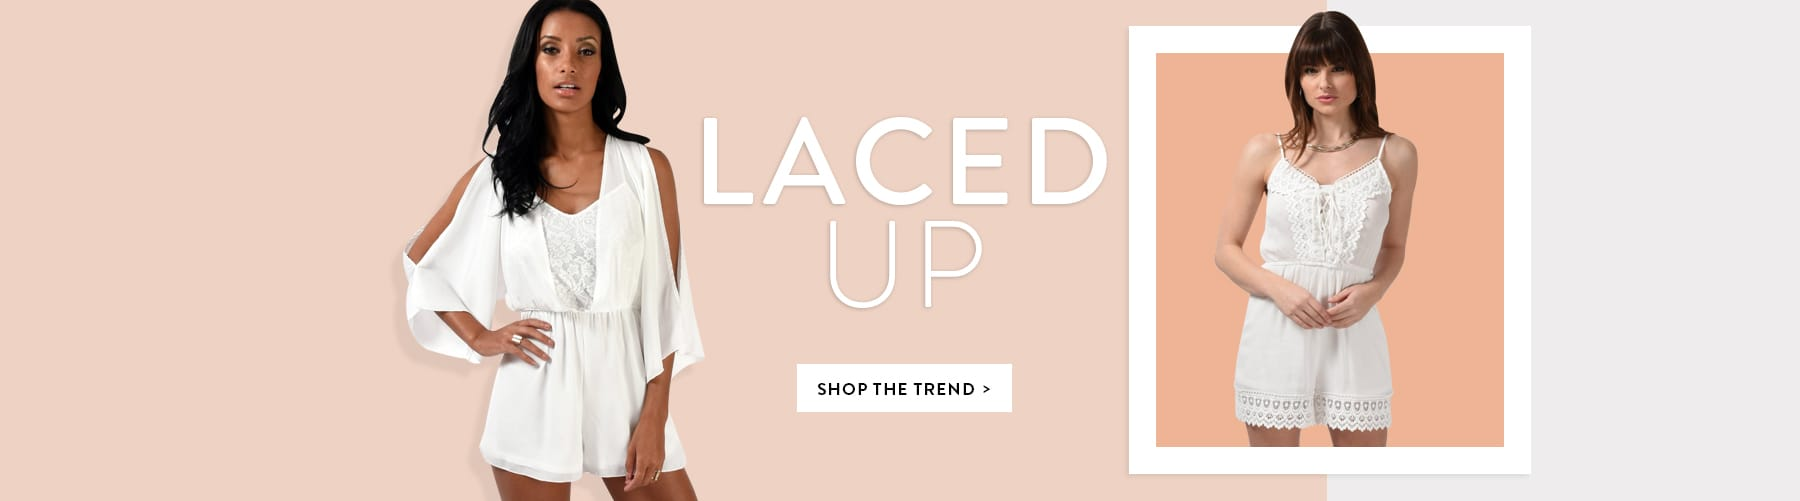 Trendy Wholesale Clothing Websites | Beauty Clothes